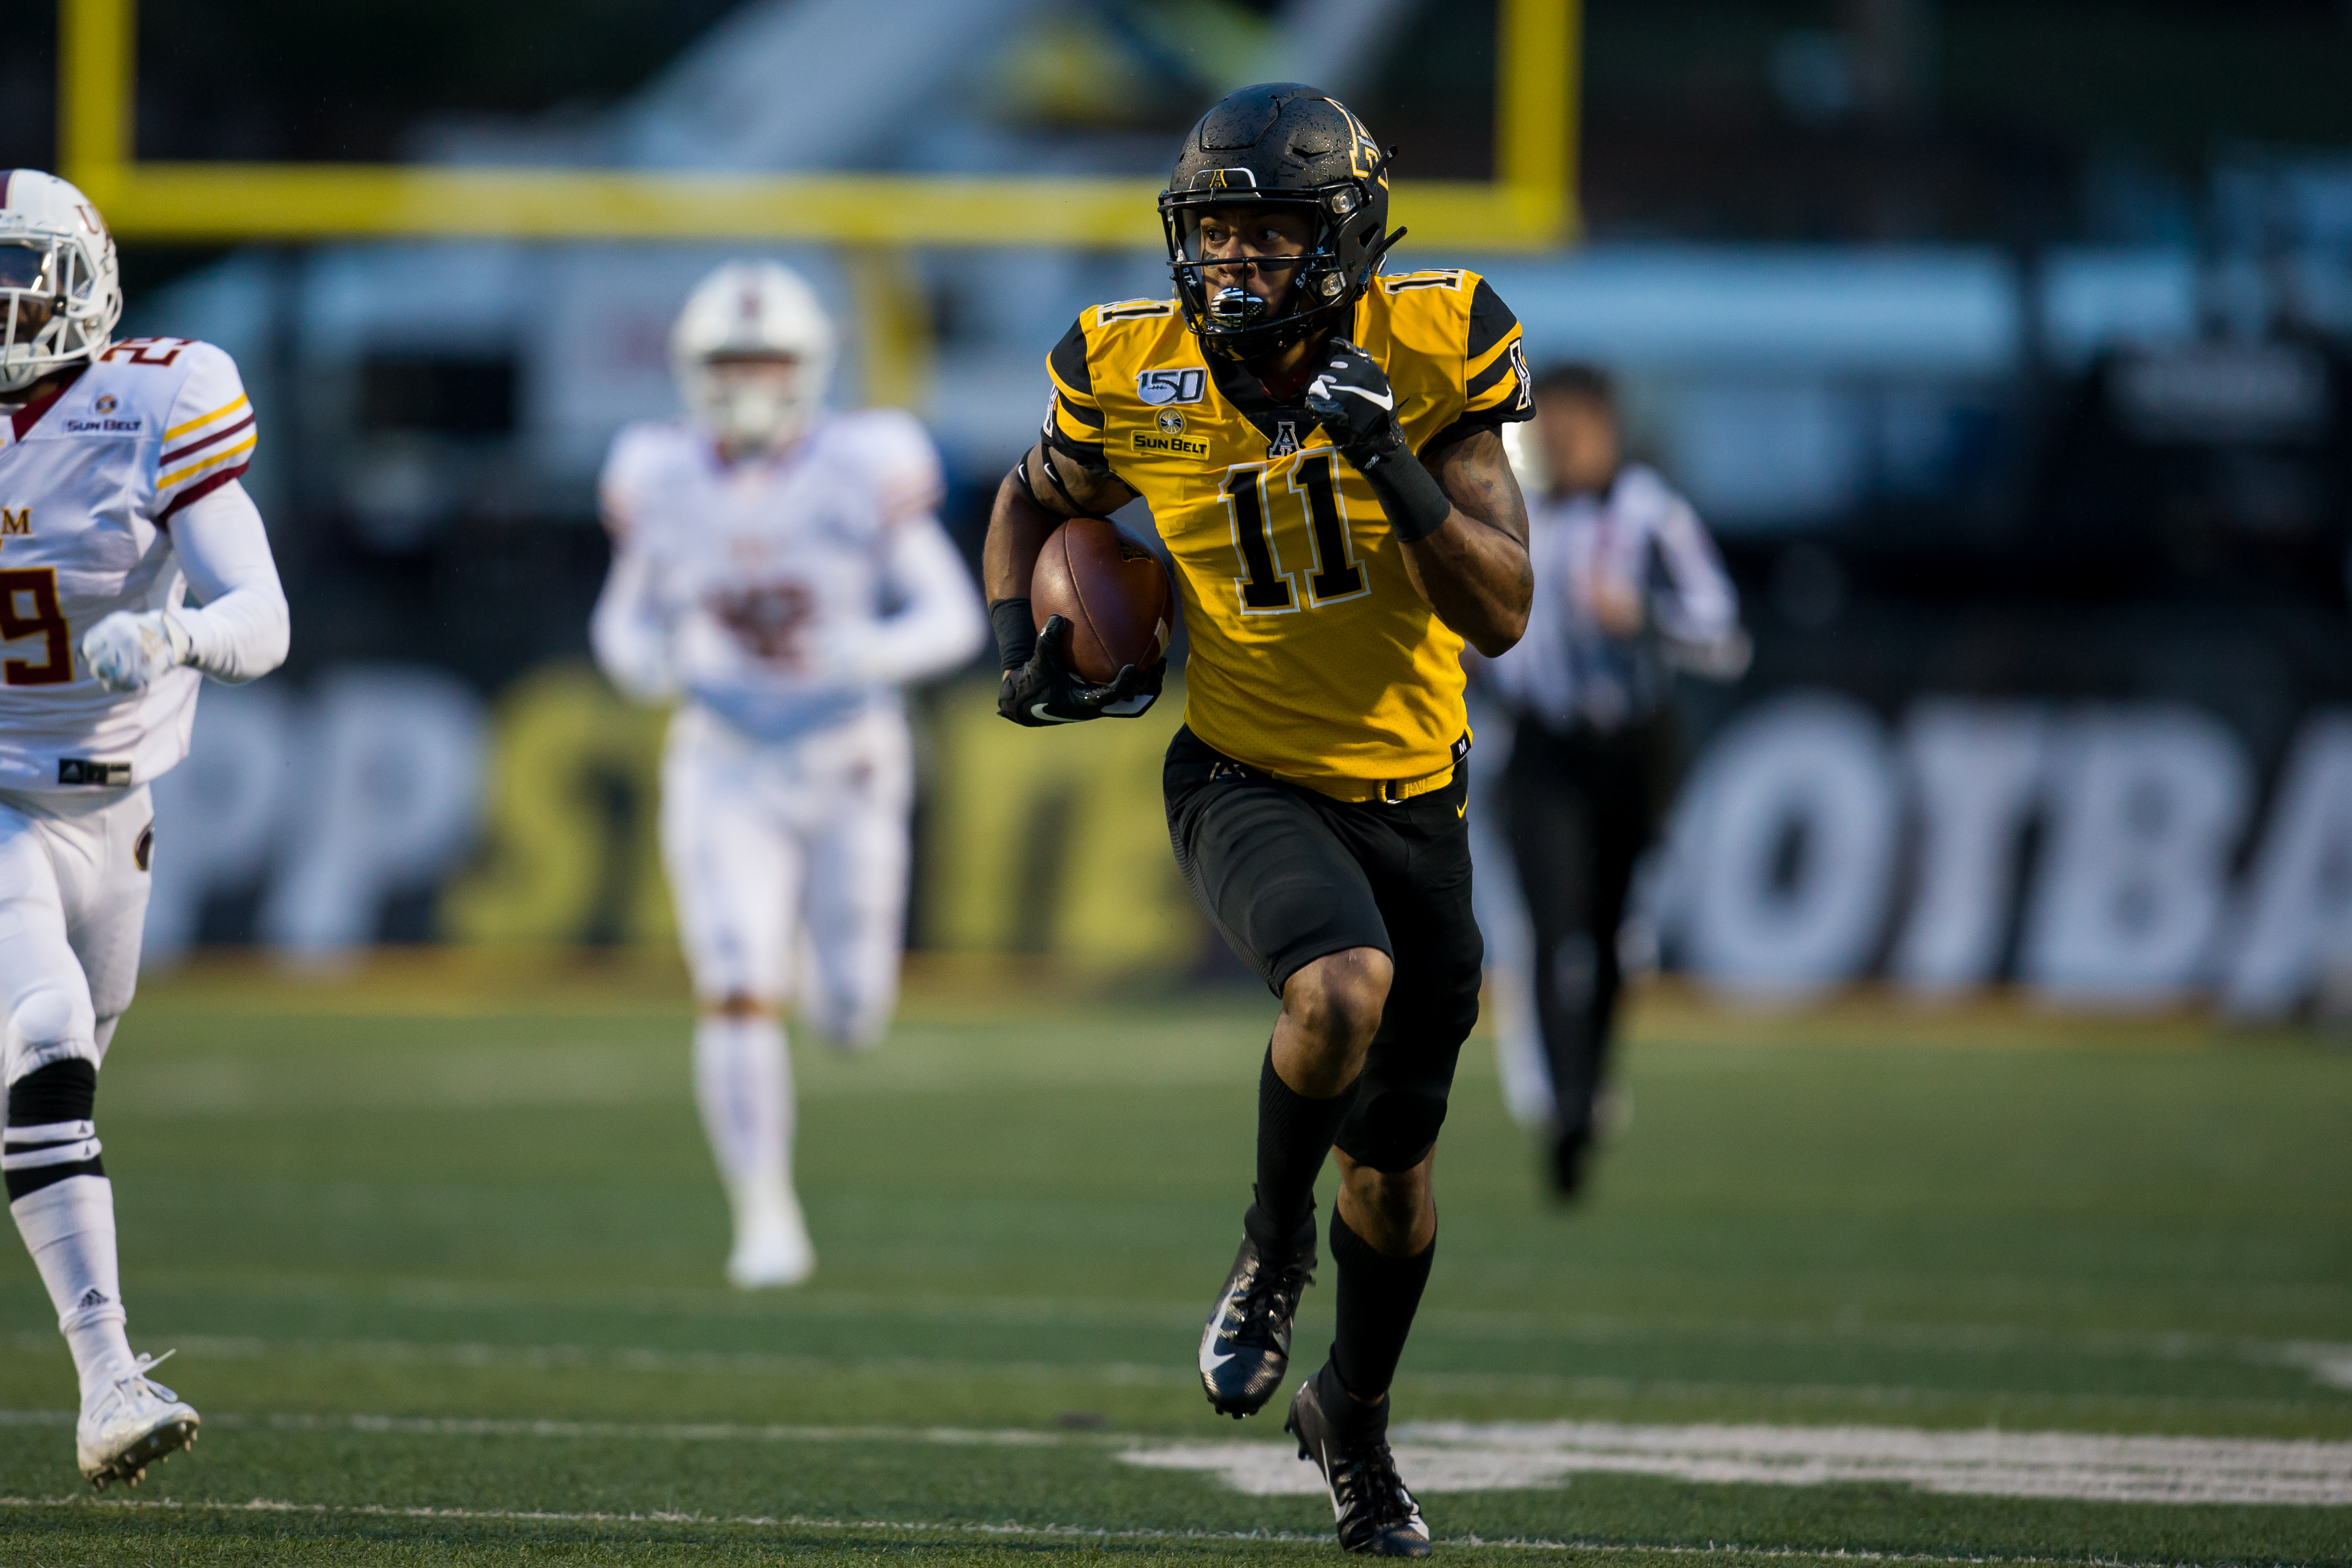 COLLEGE FOOTBALL: OCT 19 ULM at Appalachian State